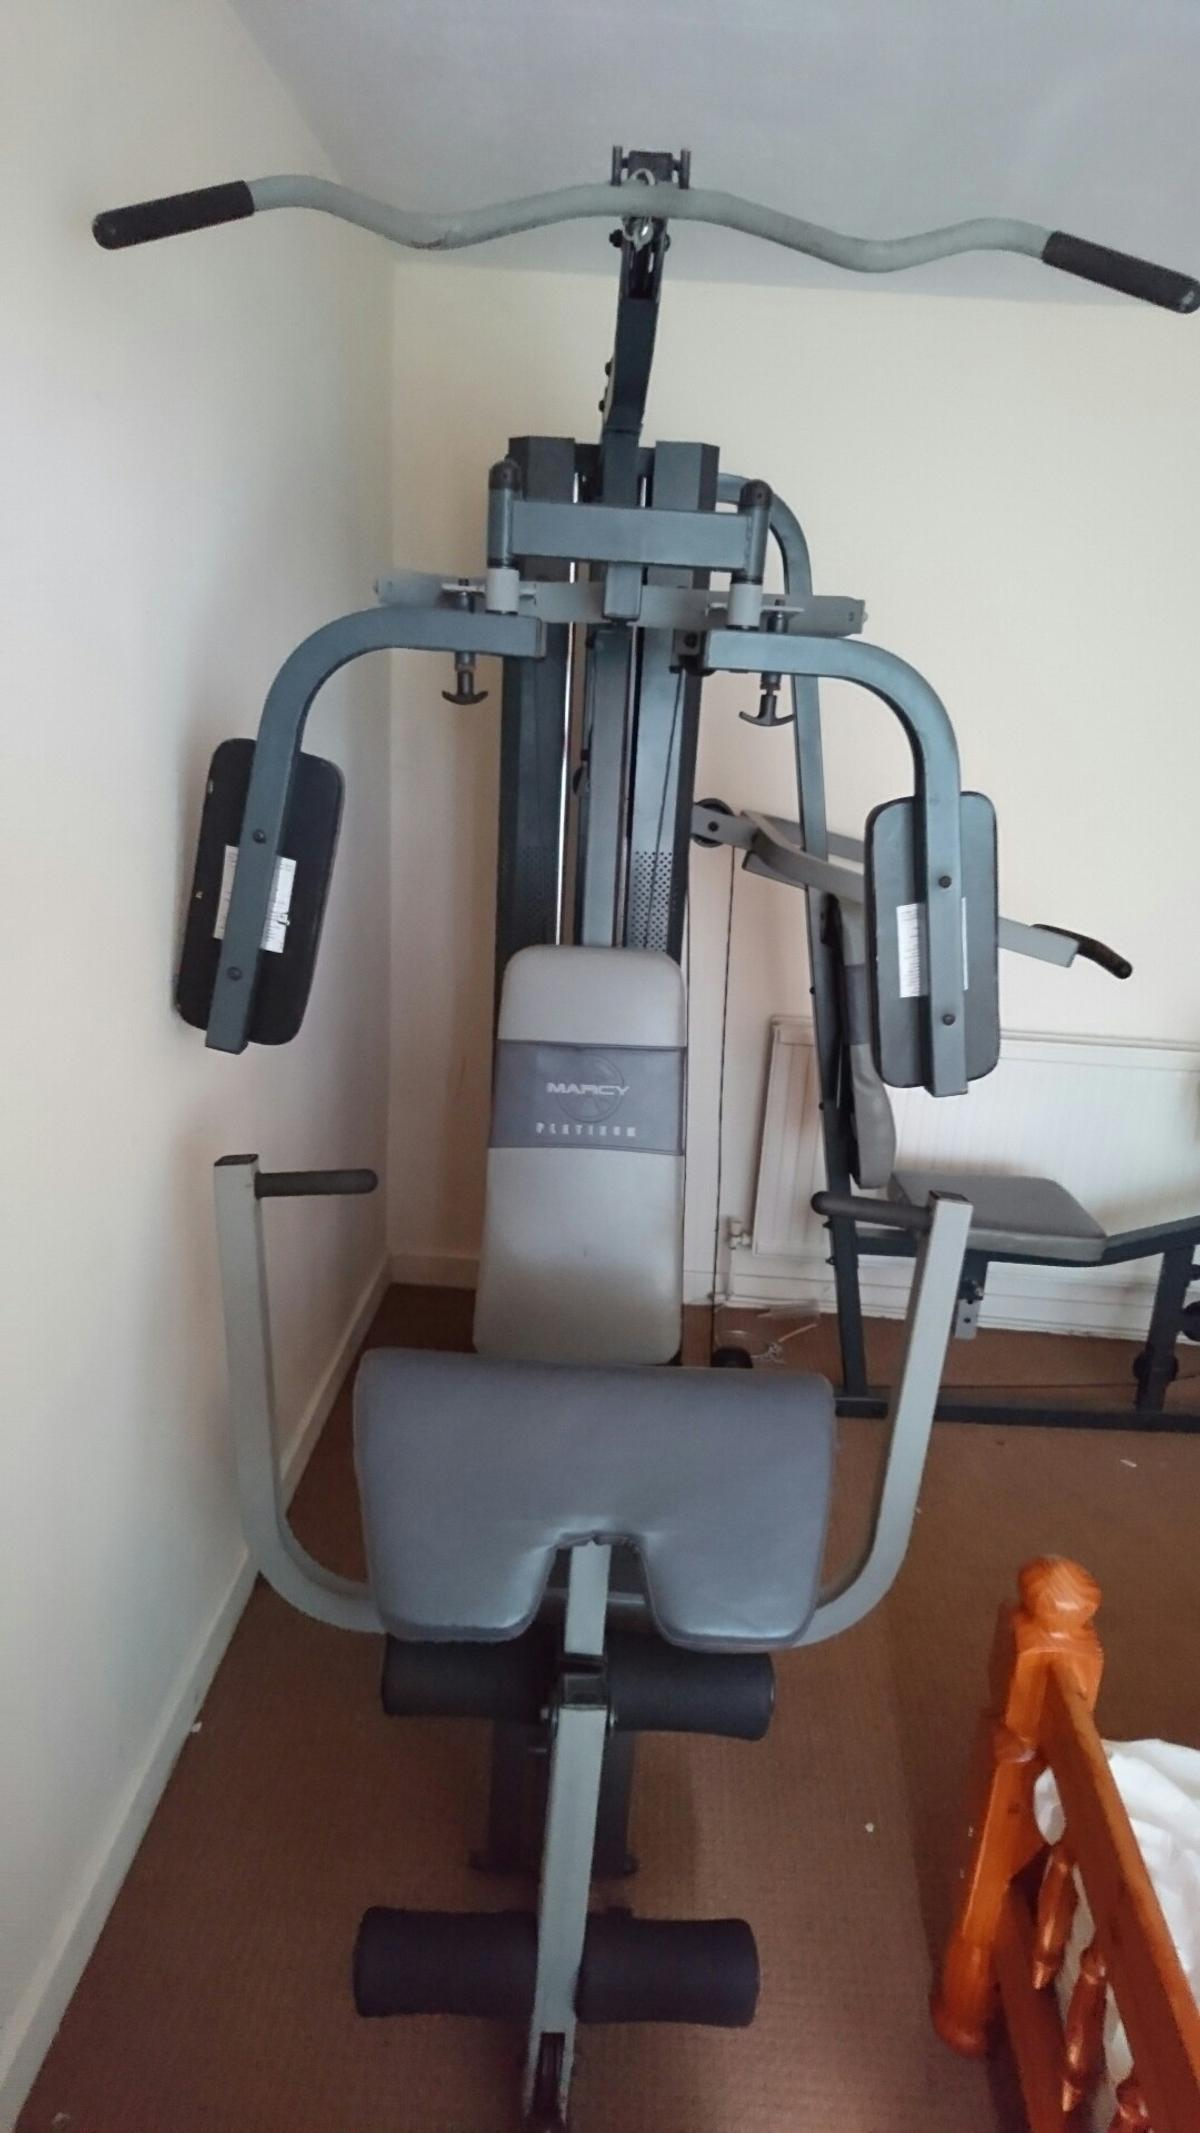 Complete home gym  Marcy Platinum dual  in Hinckley and Bosworth for